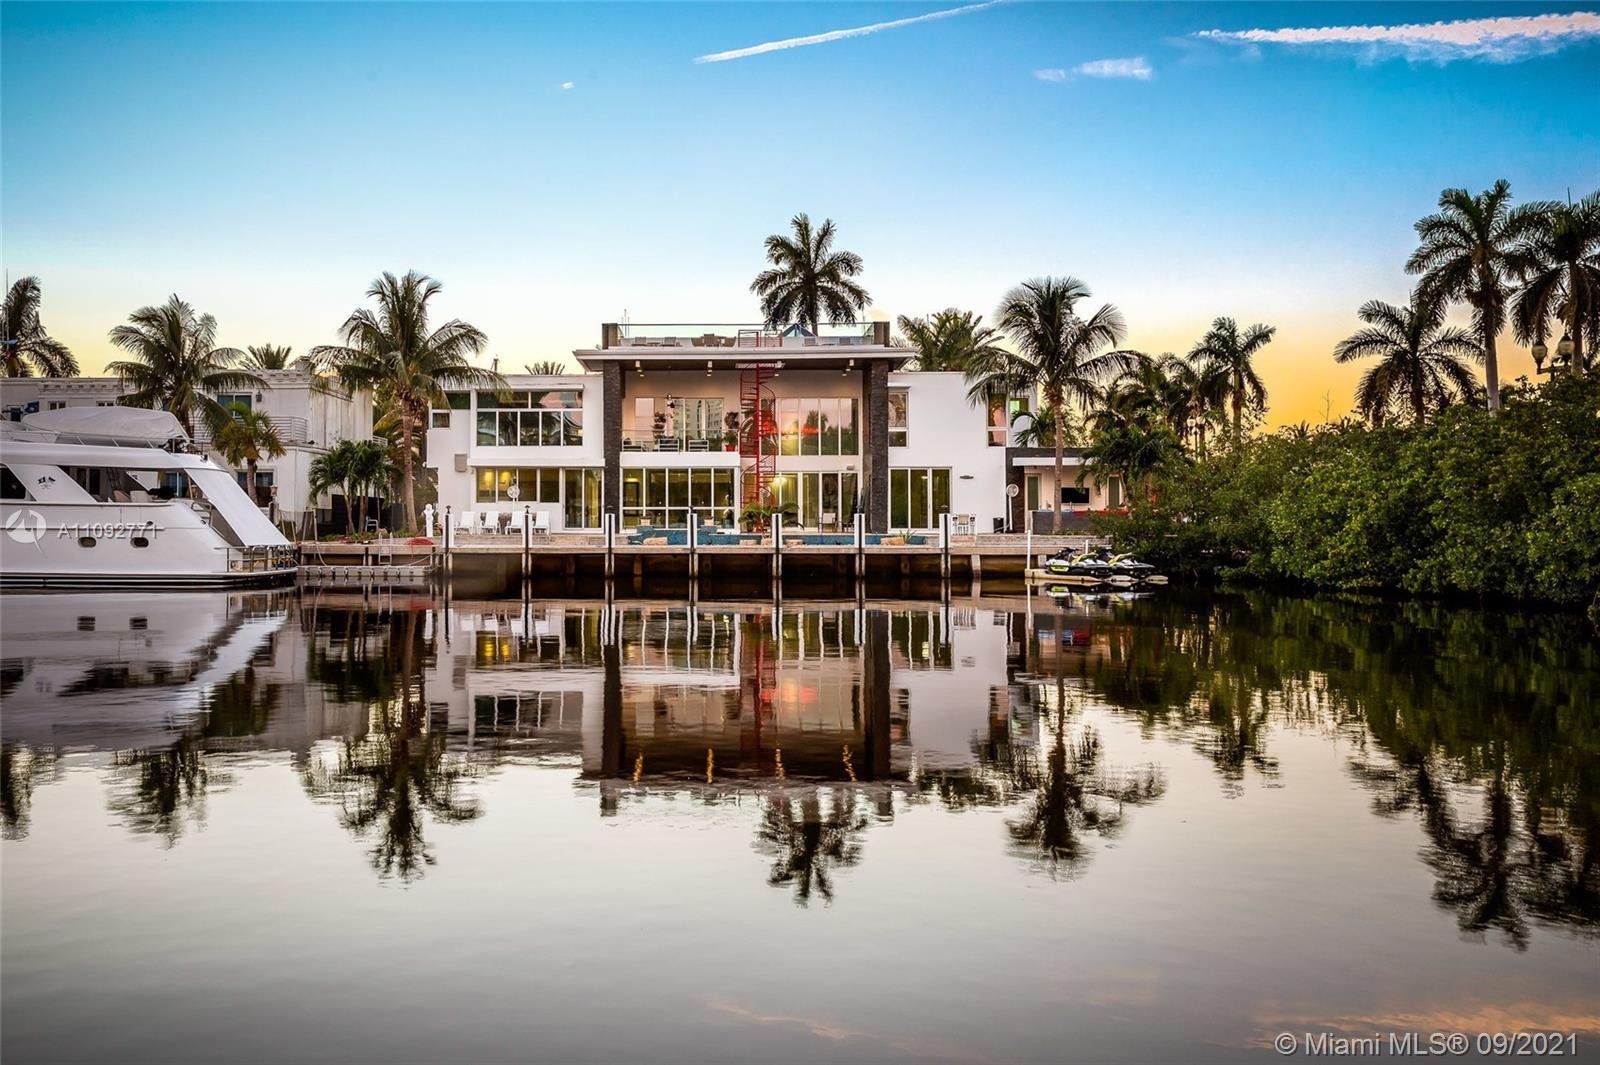 This luxurious and stunning property has 7 beds and 7.5 baths along Las Olas. This gorgeous home was designed with modern luxury in mind and has Italian furniture throughout the interior. With a top-of-line chef's kitchen, gas fireplaces, an elevator, a pristine theatre room, and beautiful ceramic white flooring. This estate comes with access to the intercoastal with a large dock that can accommodate any size vessel up to 90'. This home is within walking distance of restaurants and the beach. This home is the most luxurious property offering all the modern features of impact windows, motorized blinds, multiple ac units, two stoves, and a dishwasher. Outside you can enjoy breathtaking views along the outdoor oasis with a beautiful rooftop deck with artificial grass.